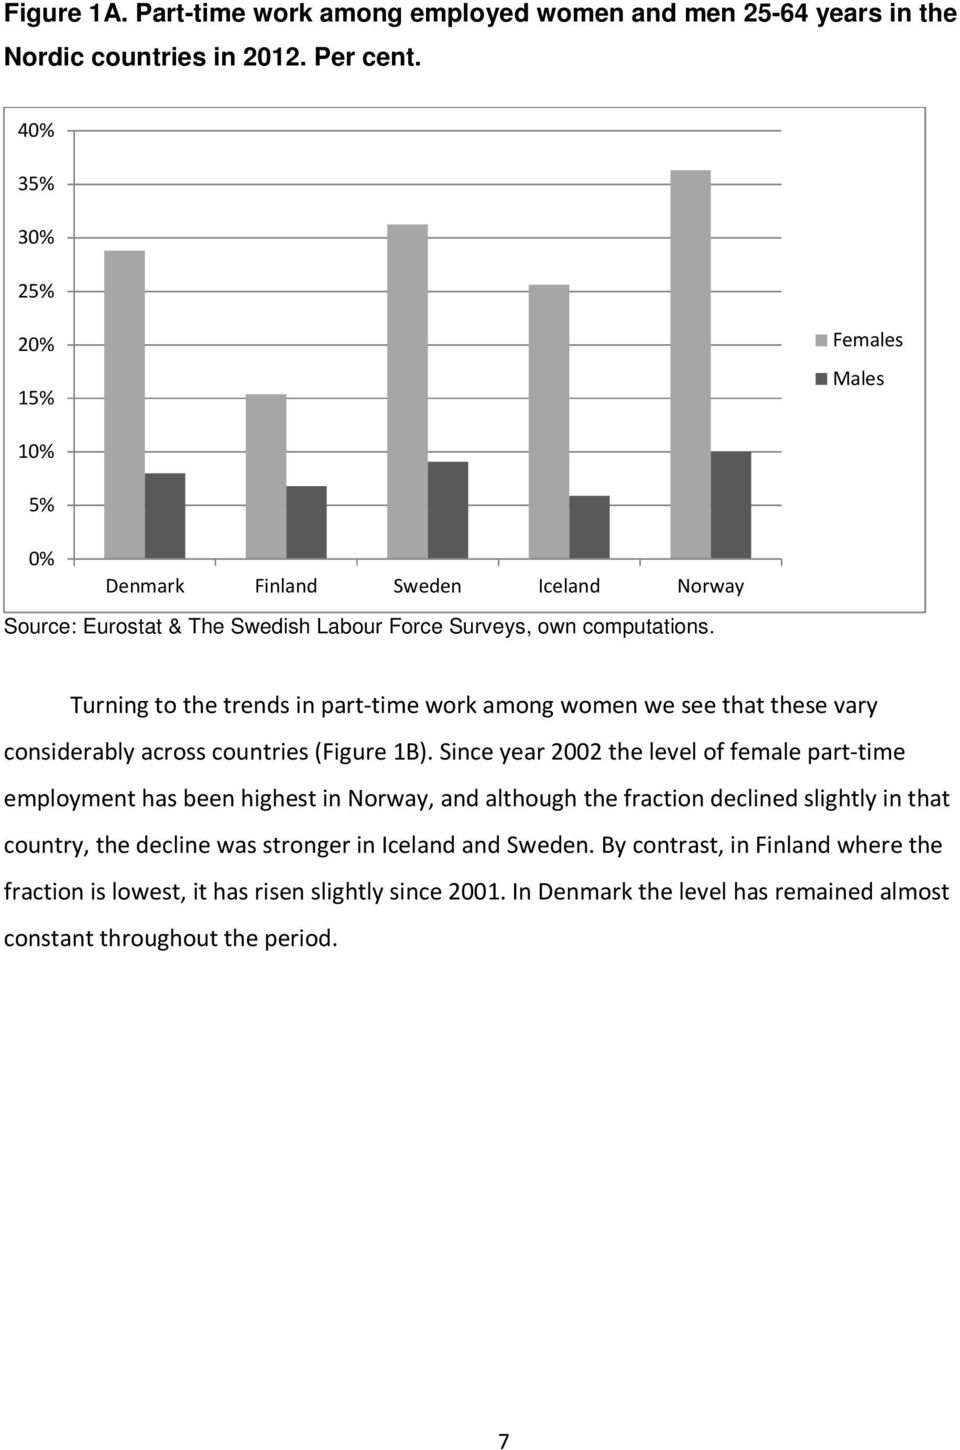 Turning to the trends in part-time work among women we see that these vary considerably across countries (Figure 1B).